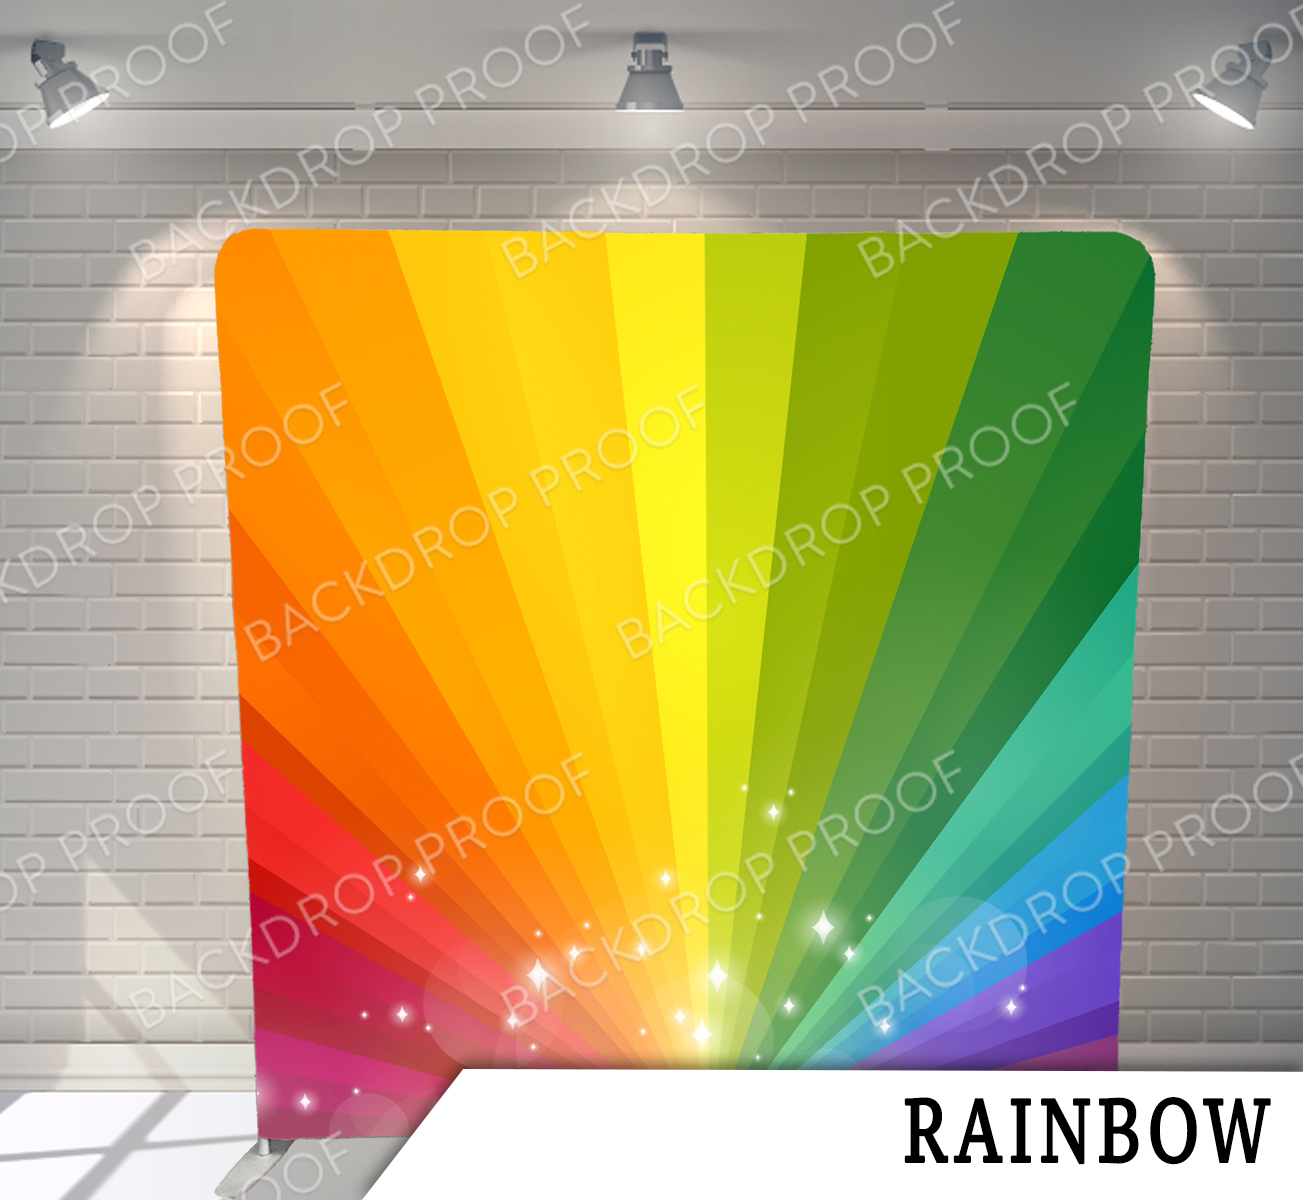 Pillow_Rainbow_G.jpg